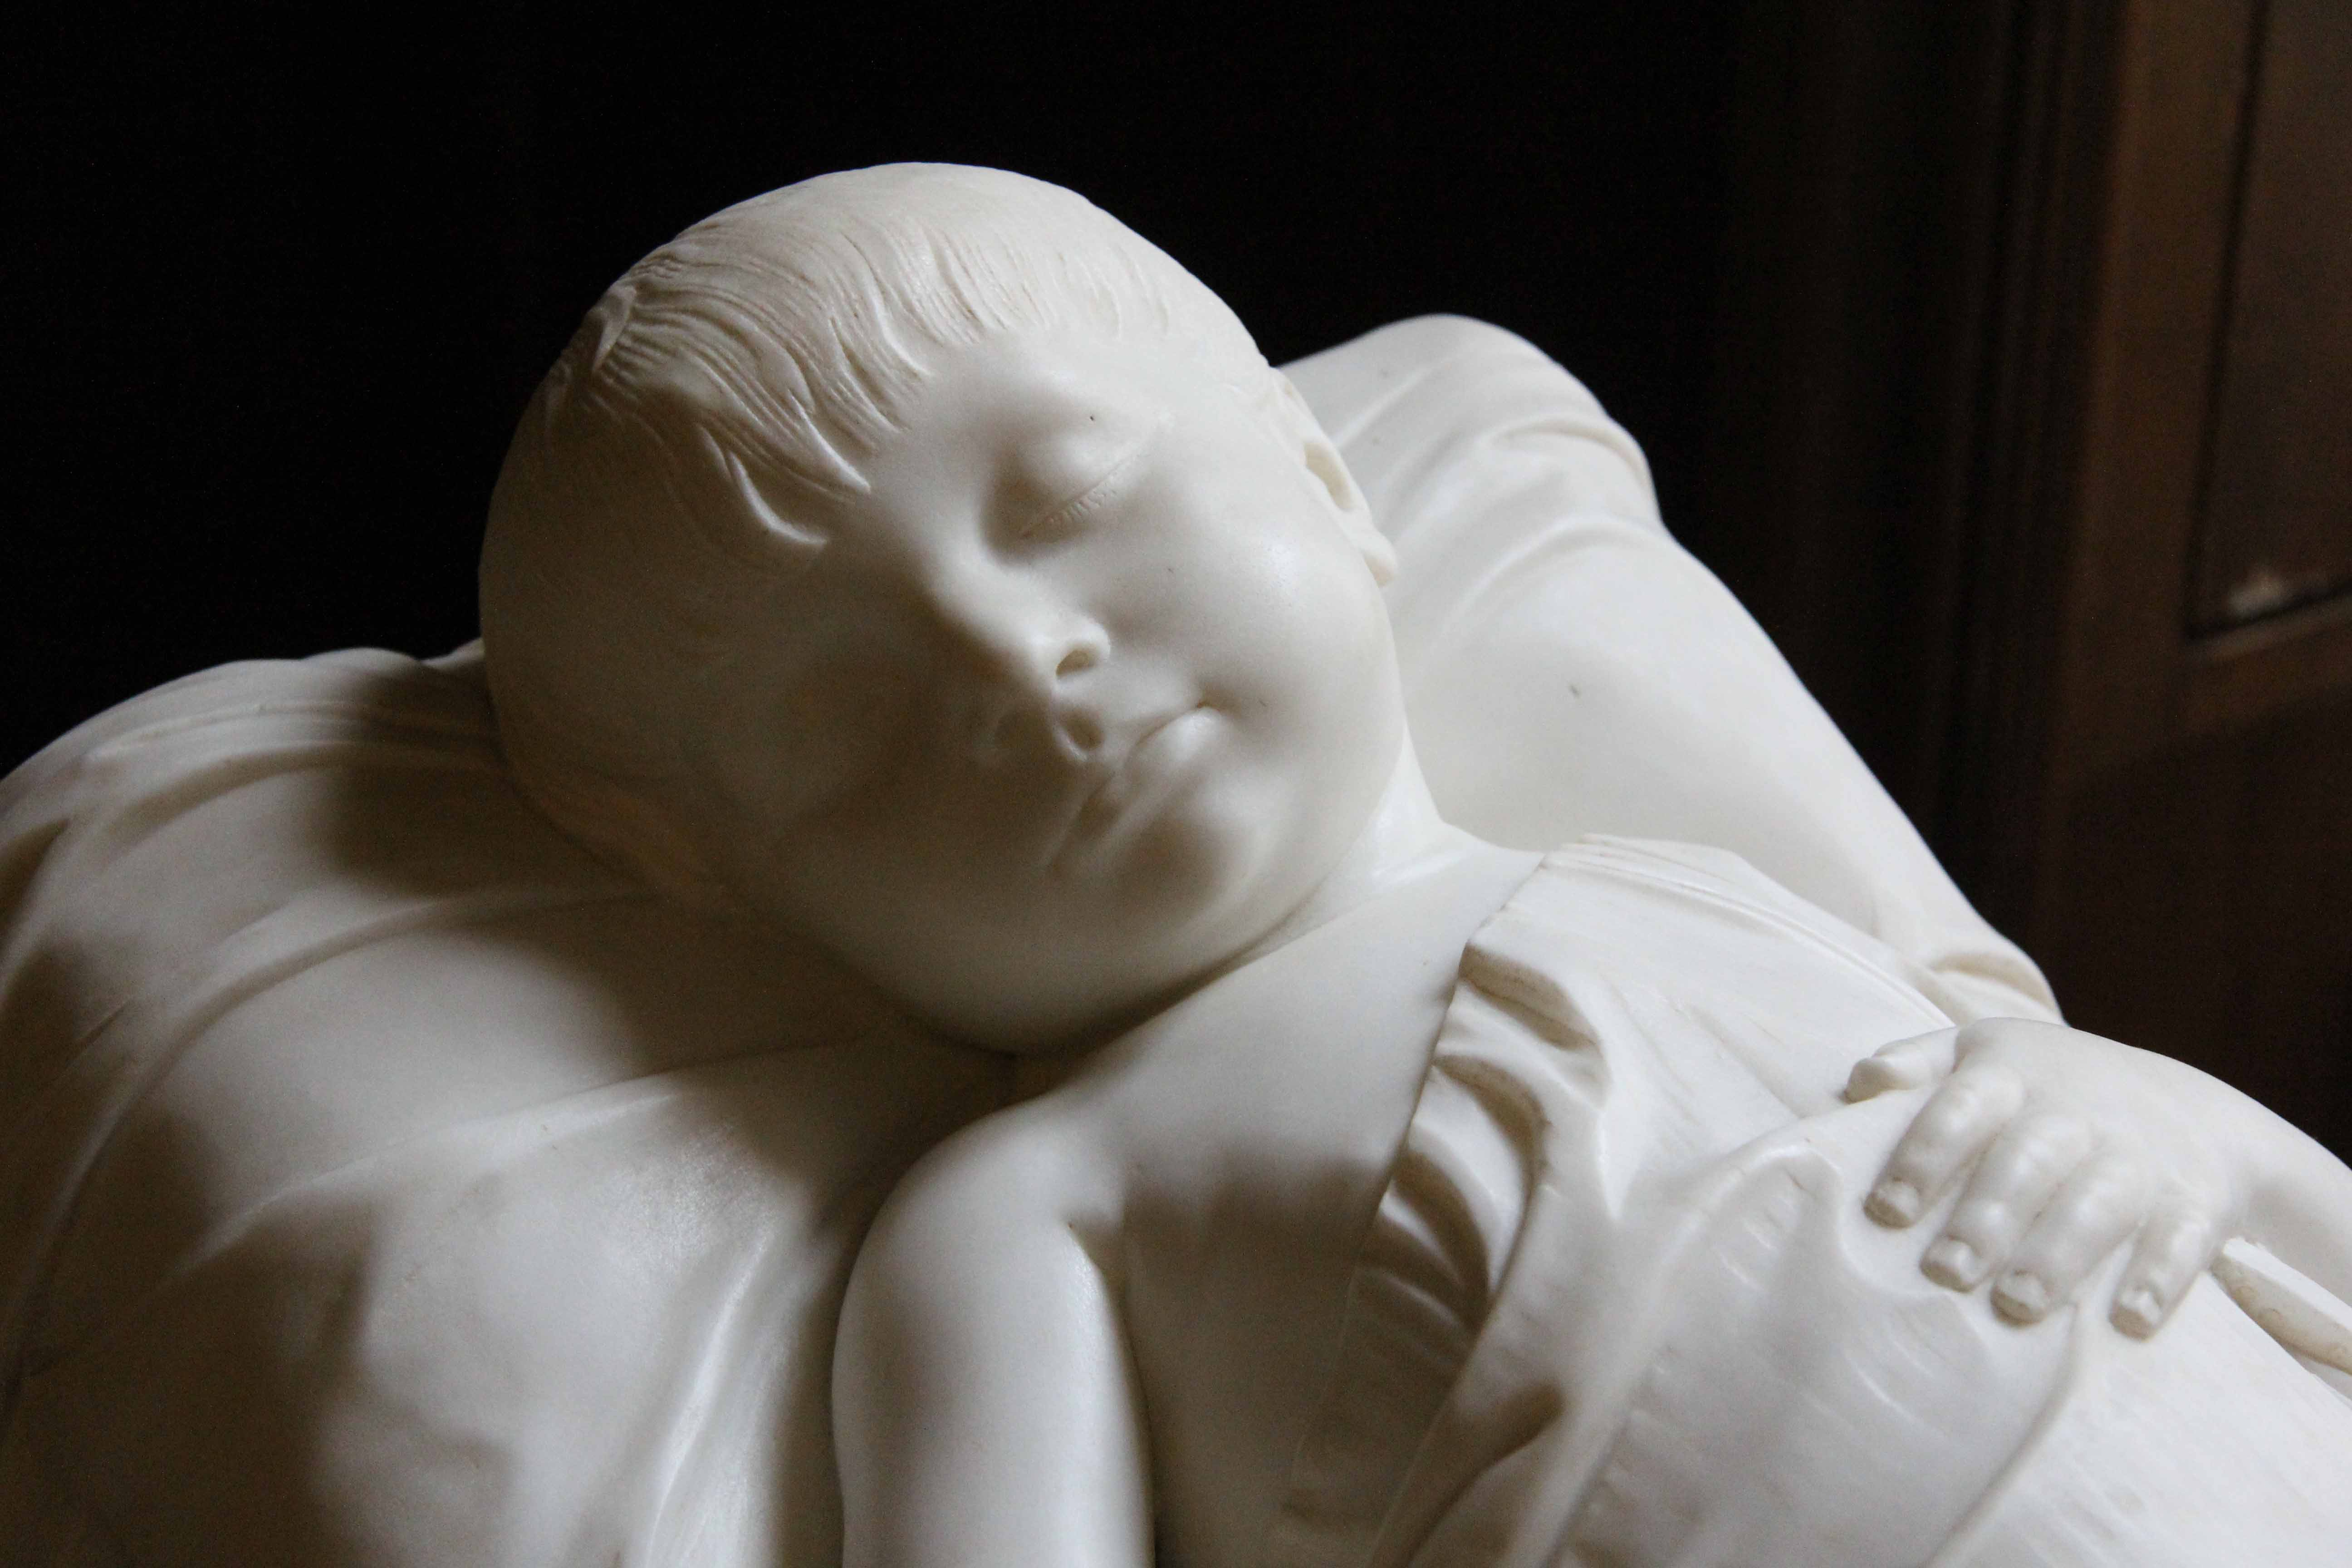 Child's grave statue in the Palace Chapel (Schlosskapelle) at Schloss Charlottenburg in Berlin